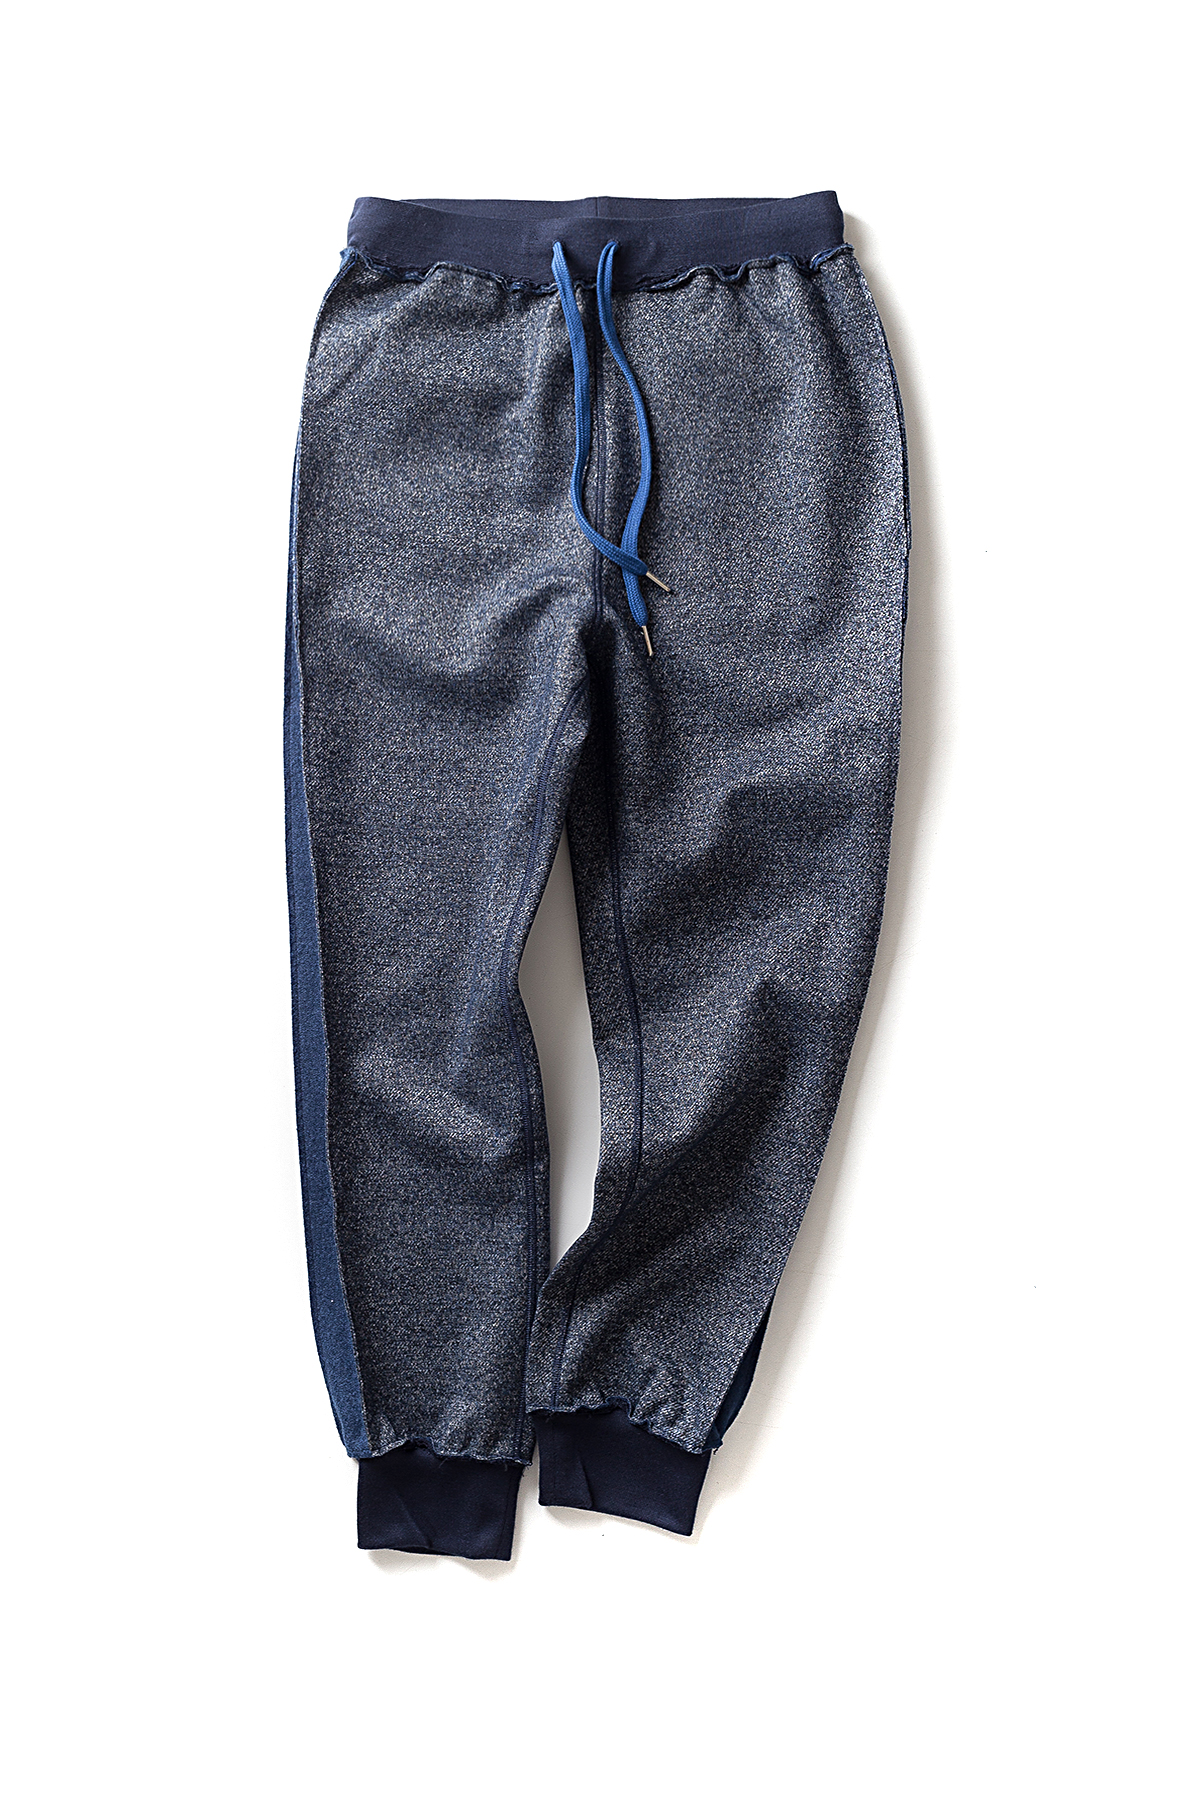 Ooparts : Fleece Back Reversal Track Pants (Blue Melange)